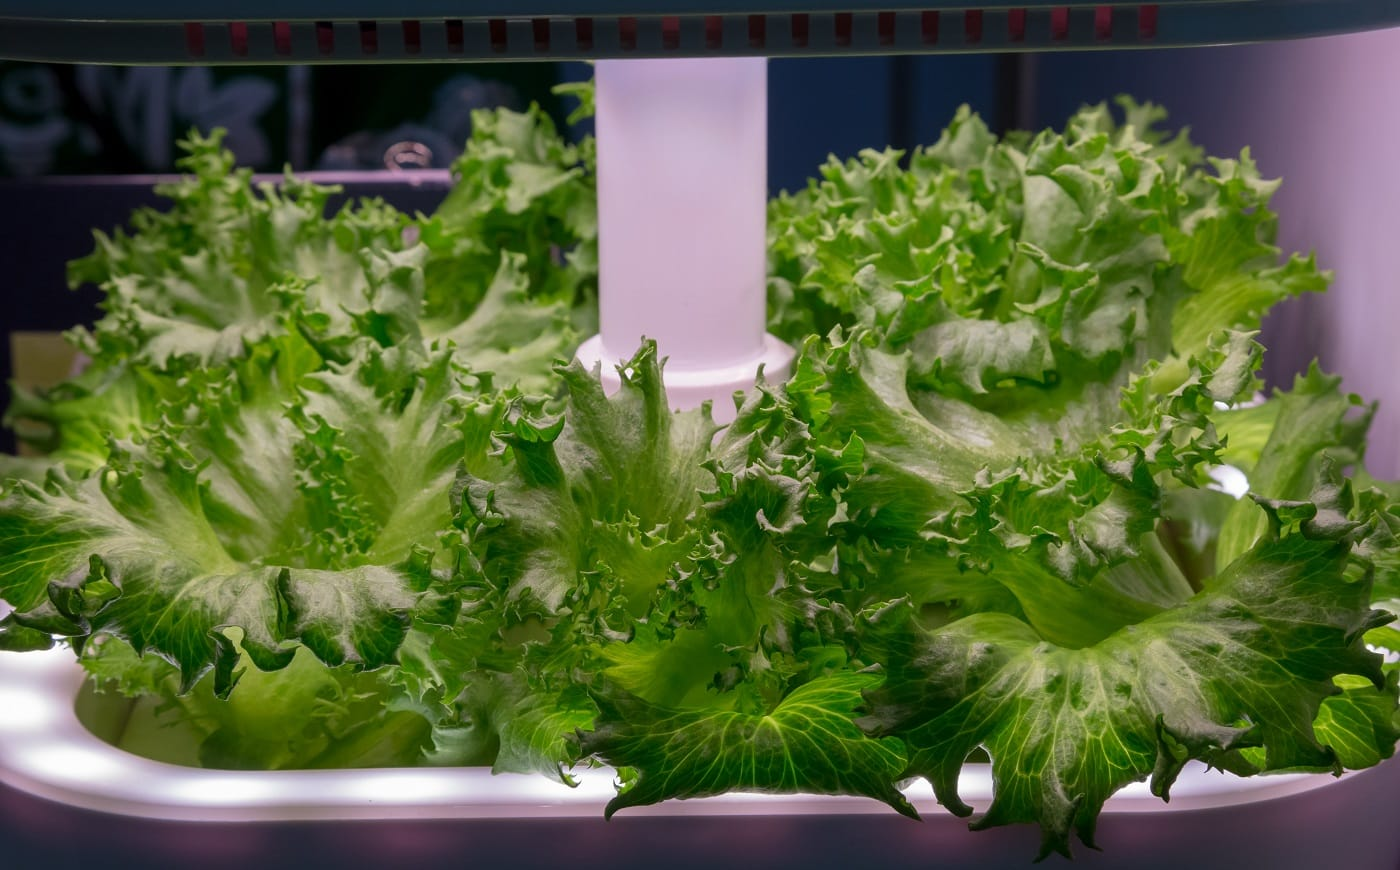 Vegetable growing with LED Light Indoor farm, Agriculture Technology. Organic hydroponic Brassica chinensis